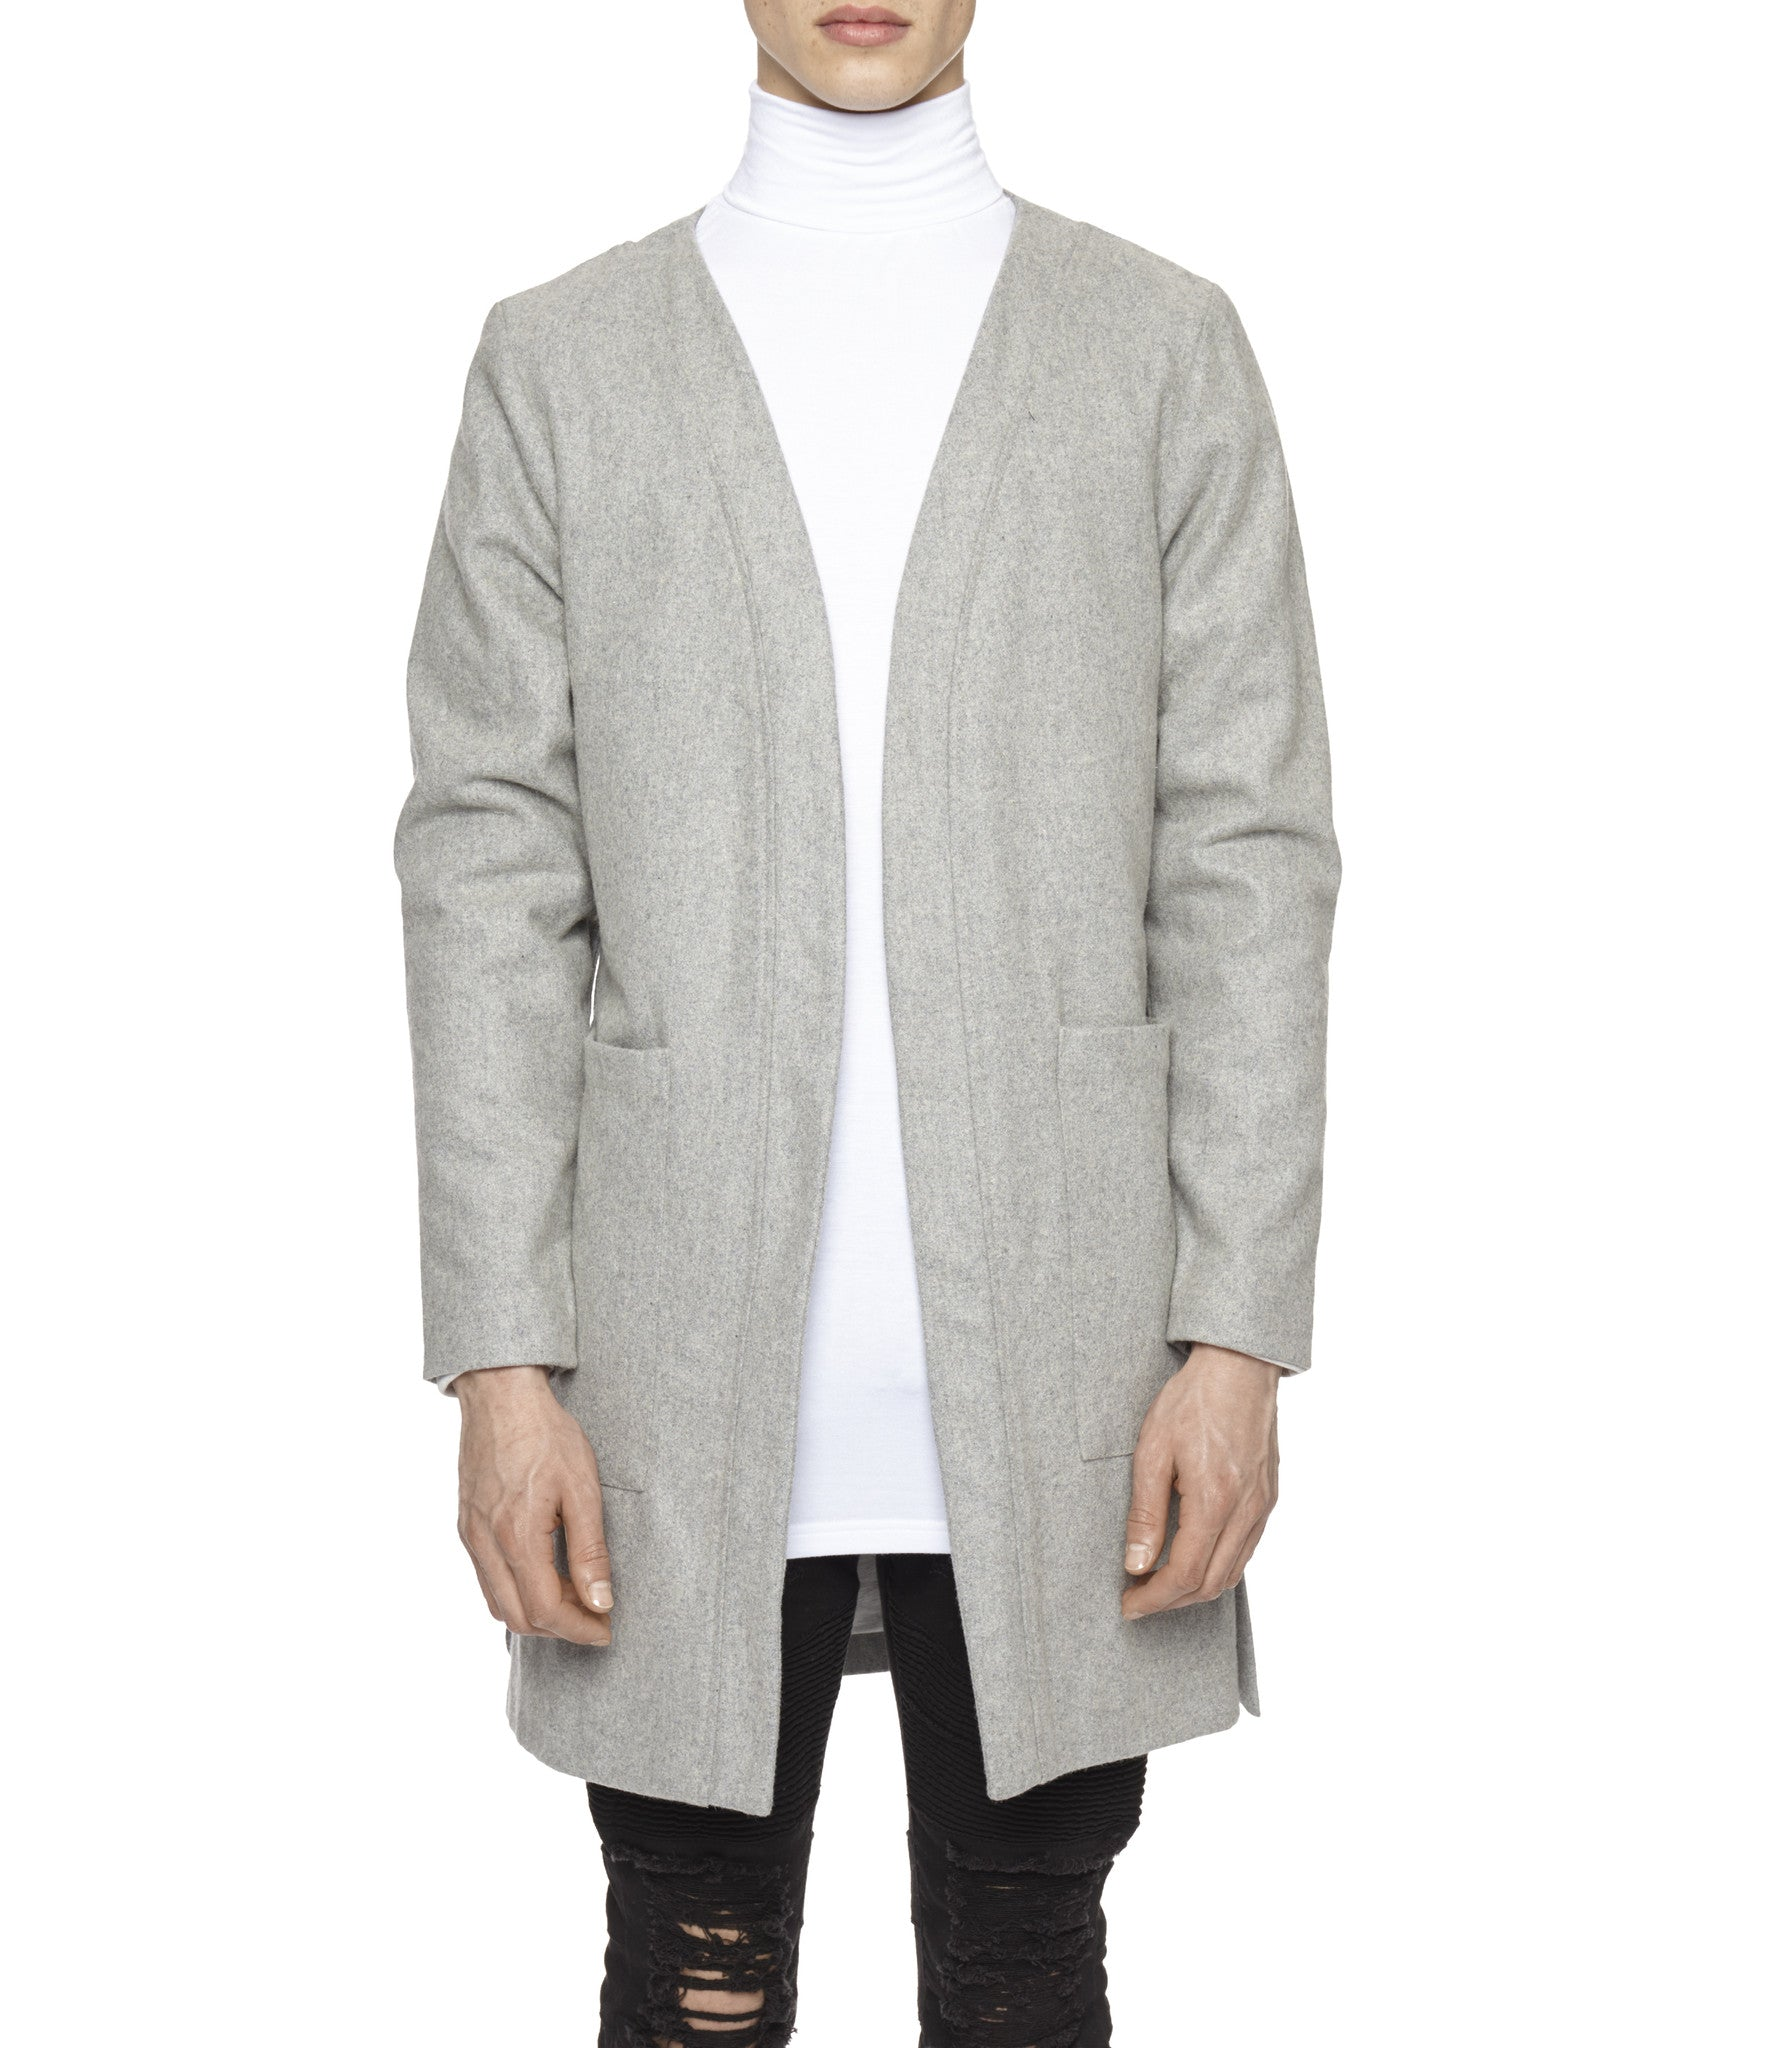 KM070 Wool Blend Kimono Coat - Grey - underated london - underatedco - 3